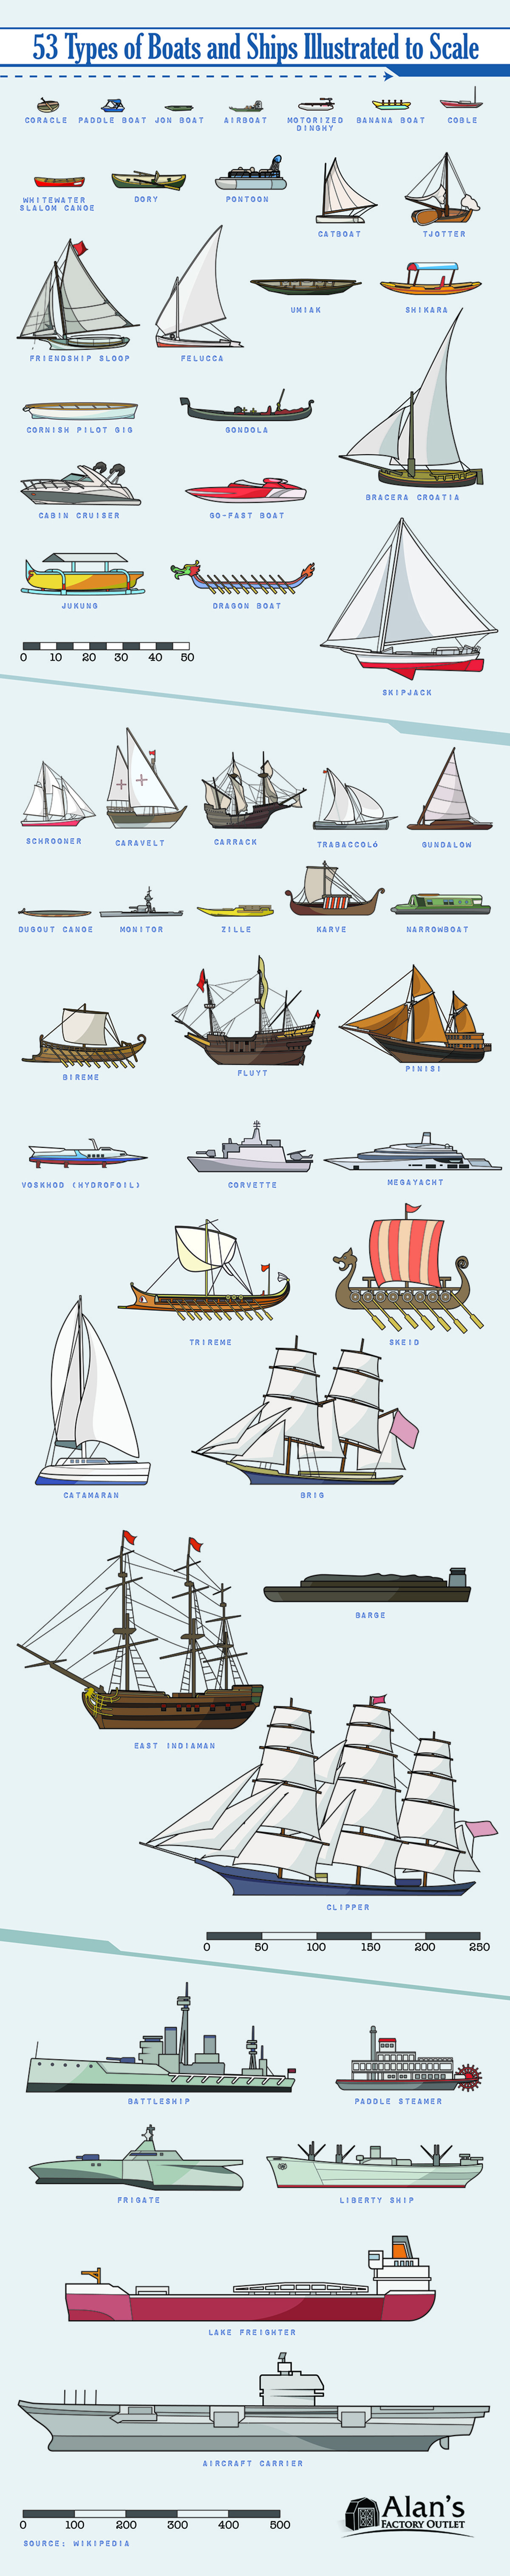 53 different types of boats and ships draw to scale. OP: .. Skipjack, Carrack, Caravelt, Pinisi. Umiak, Gundalow, paddle steamer, Friendship boat! join list: TheNautilusMention History